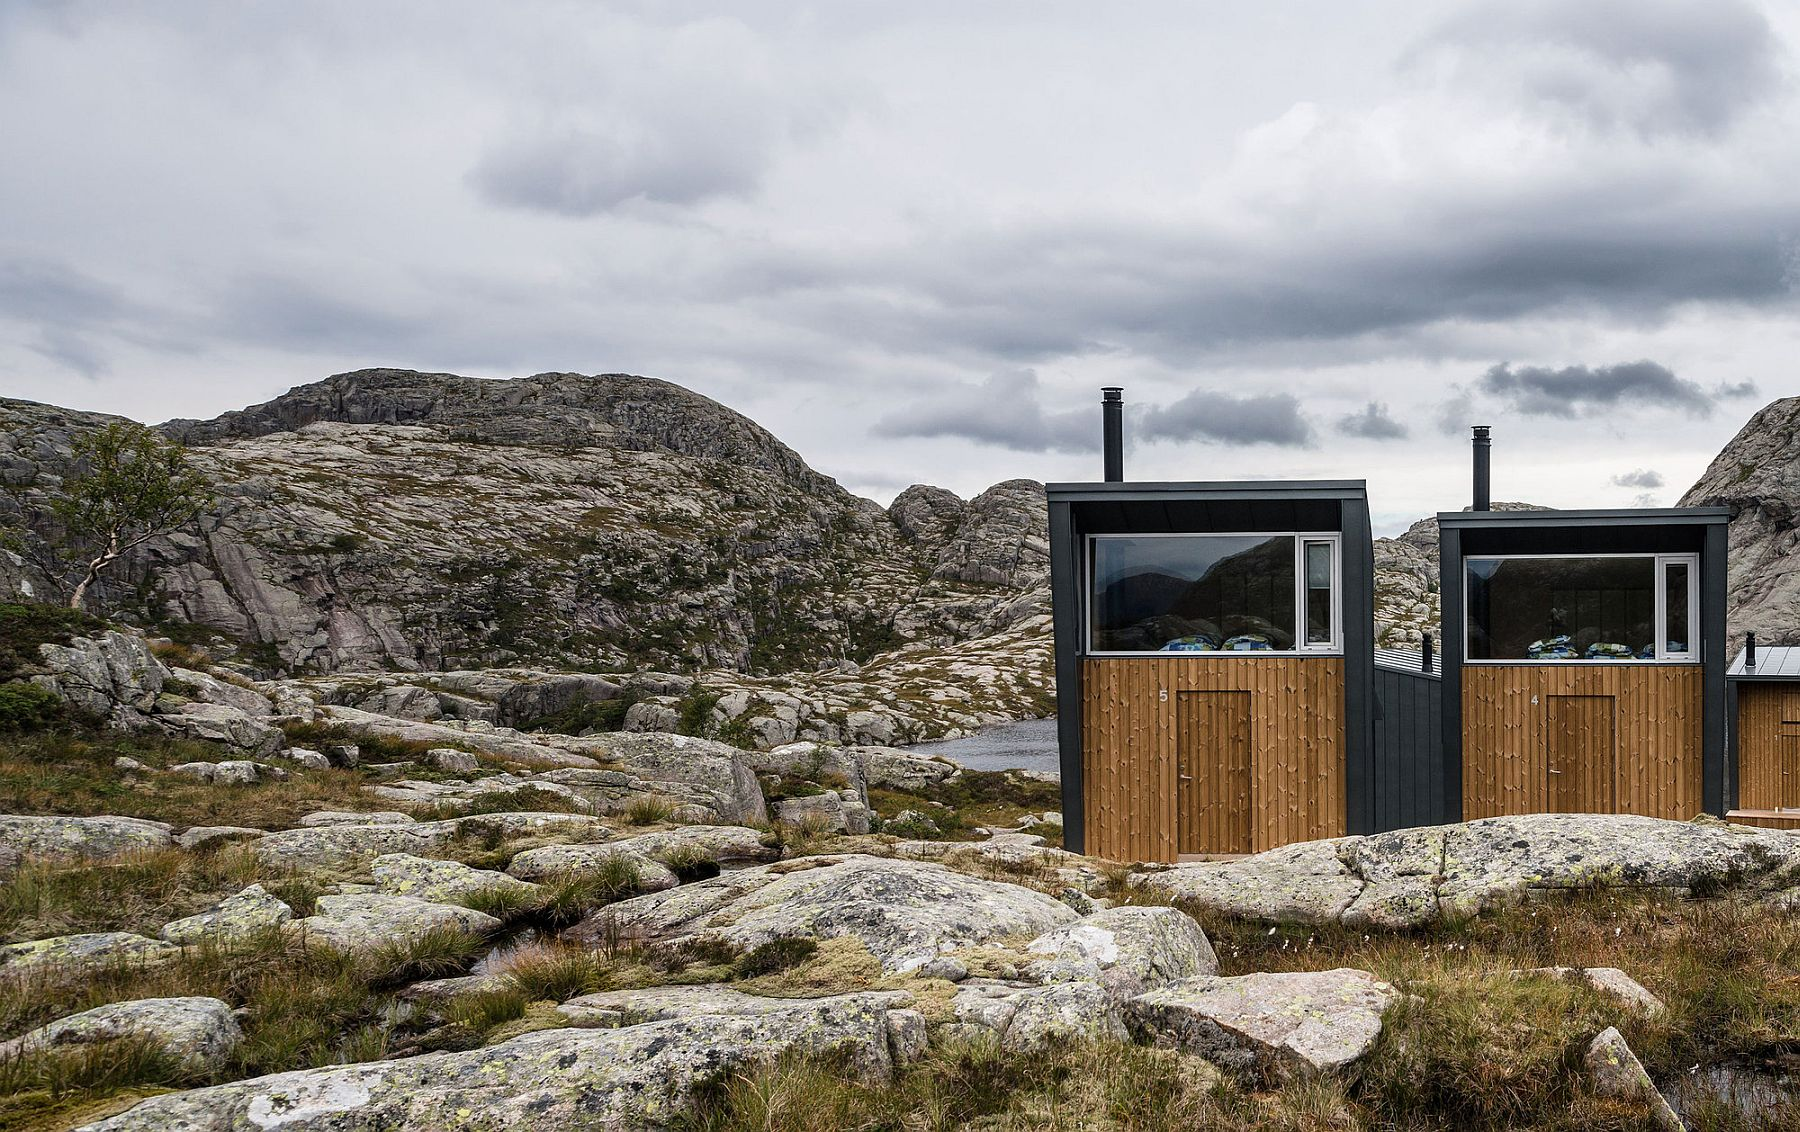 Rolled zinc and wood shape the exterior of the cabins